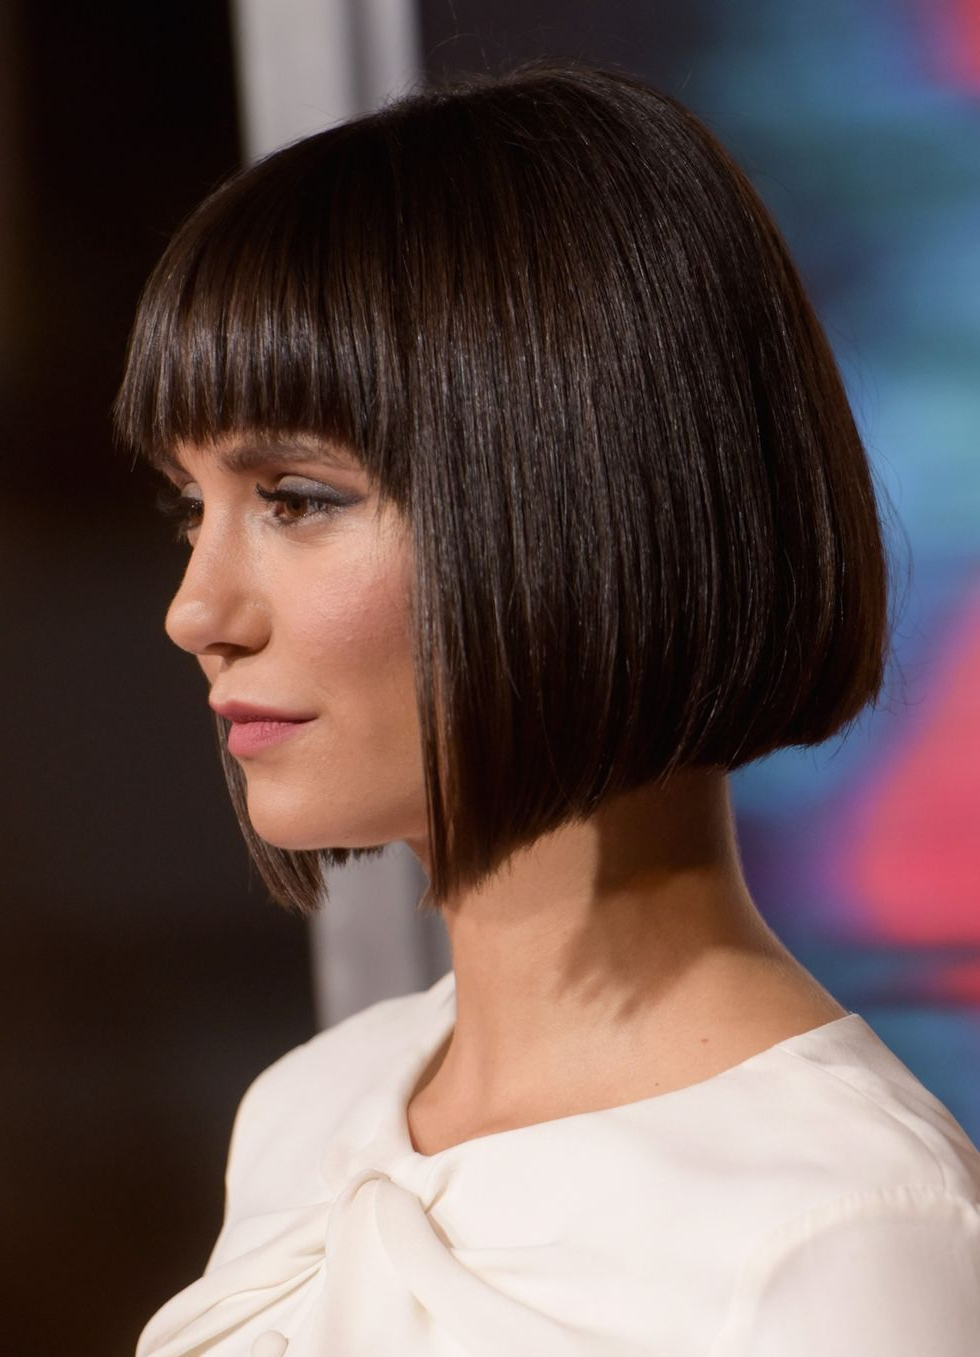 50 Best Bob Styles Of 2017 – Bob Haircuts & Hairstyles For Women Within Bouncy Bob Hairstyles For Women 50+ (View 9 of 20)